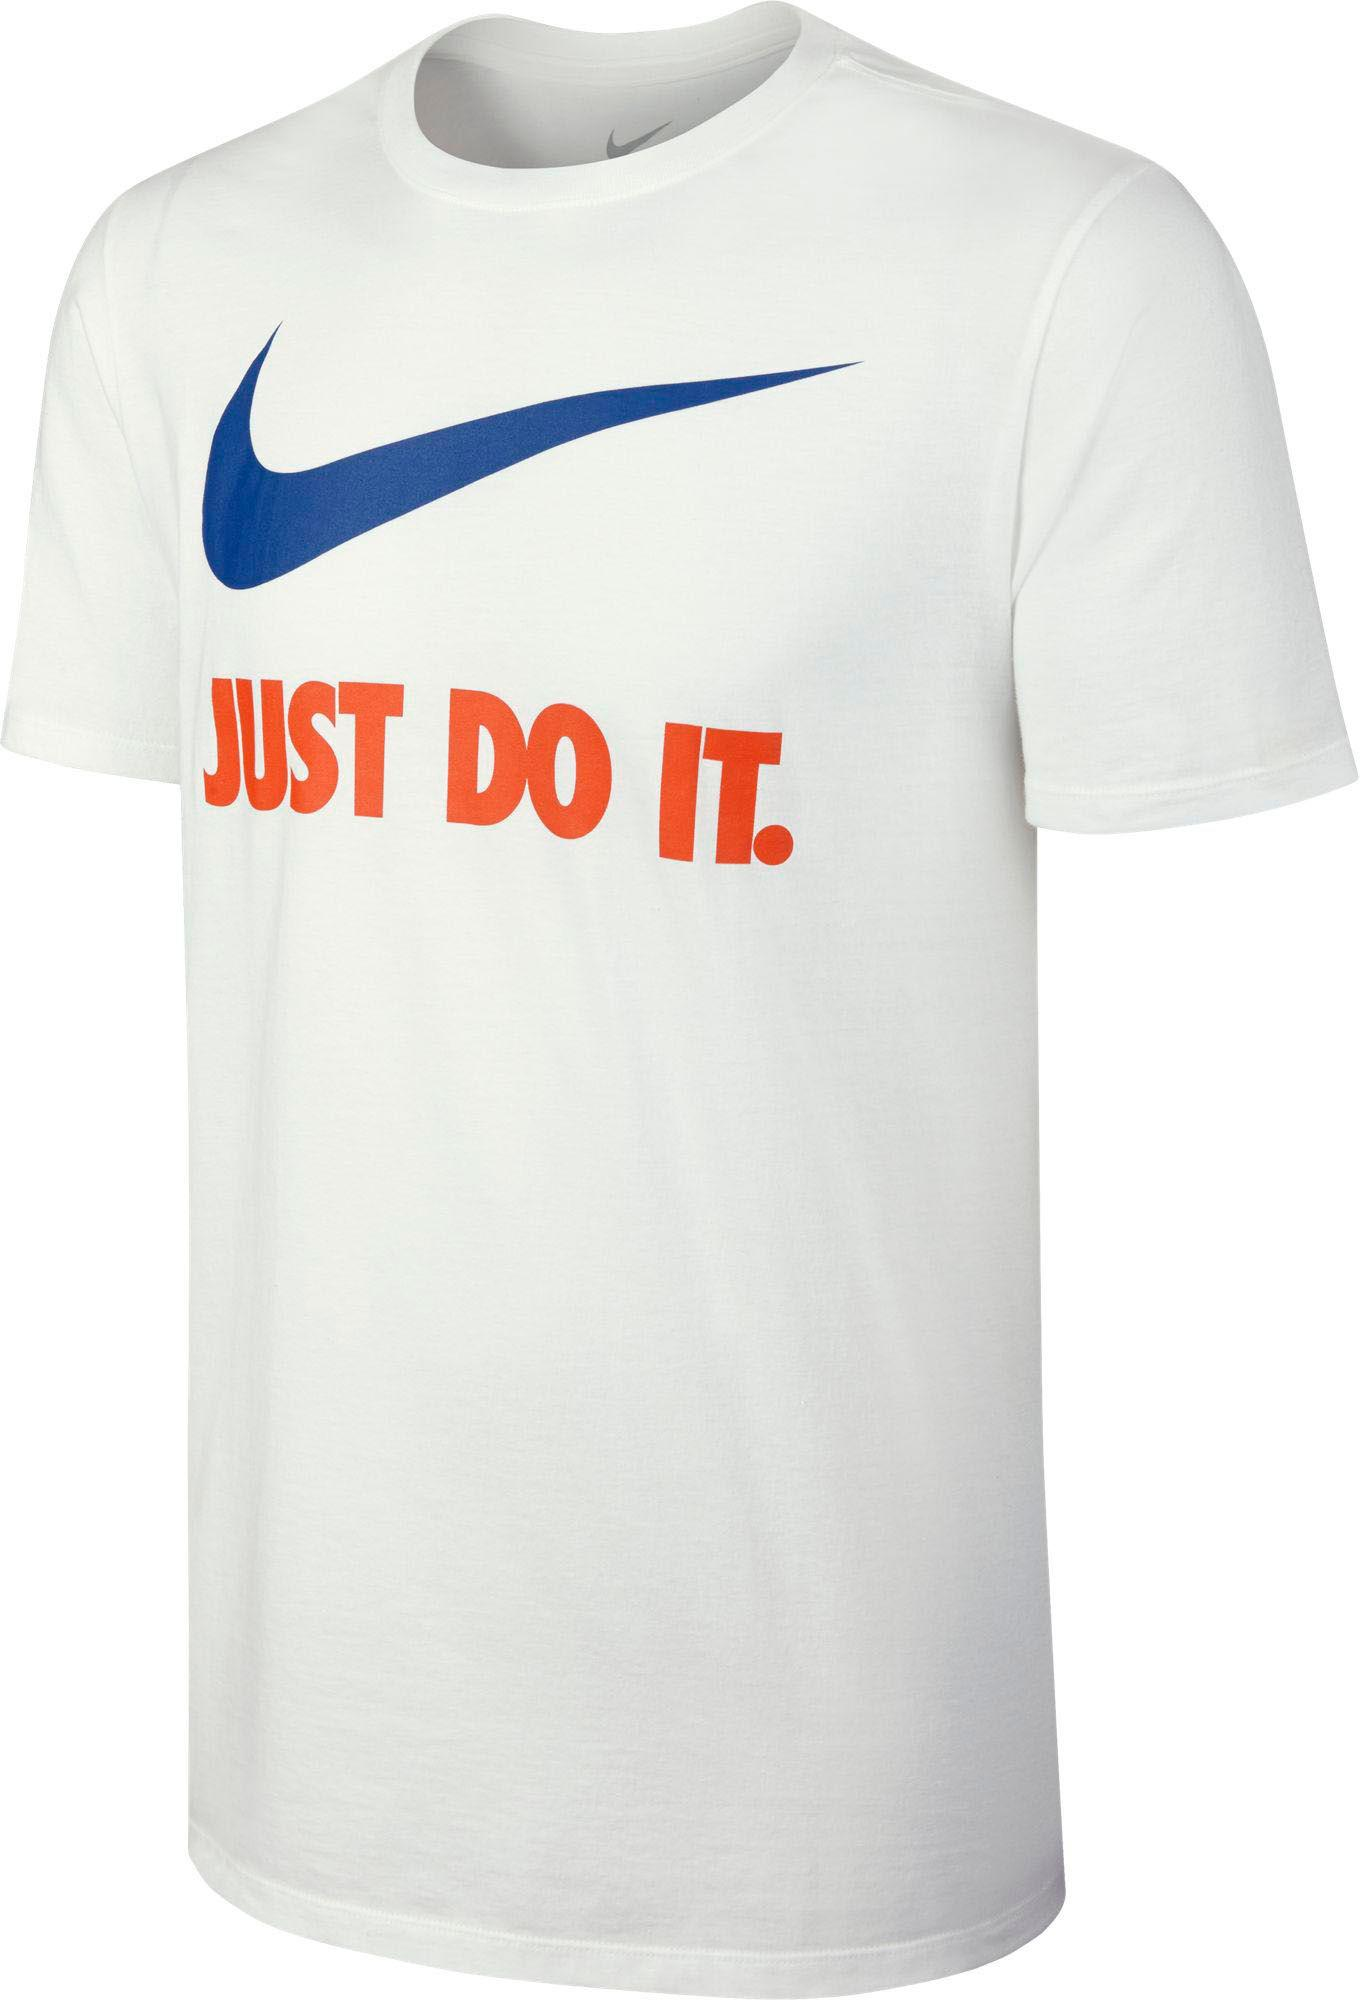 ed334a3b9 Nike New Just Do It Graphic T-shirt in White for Men - Lyst